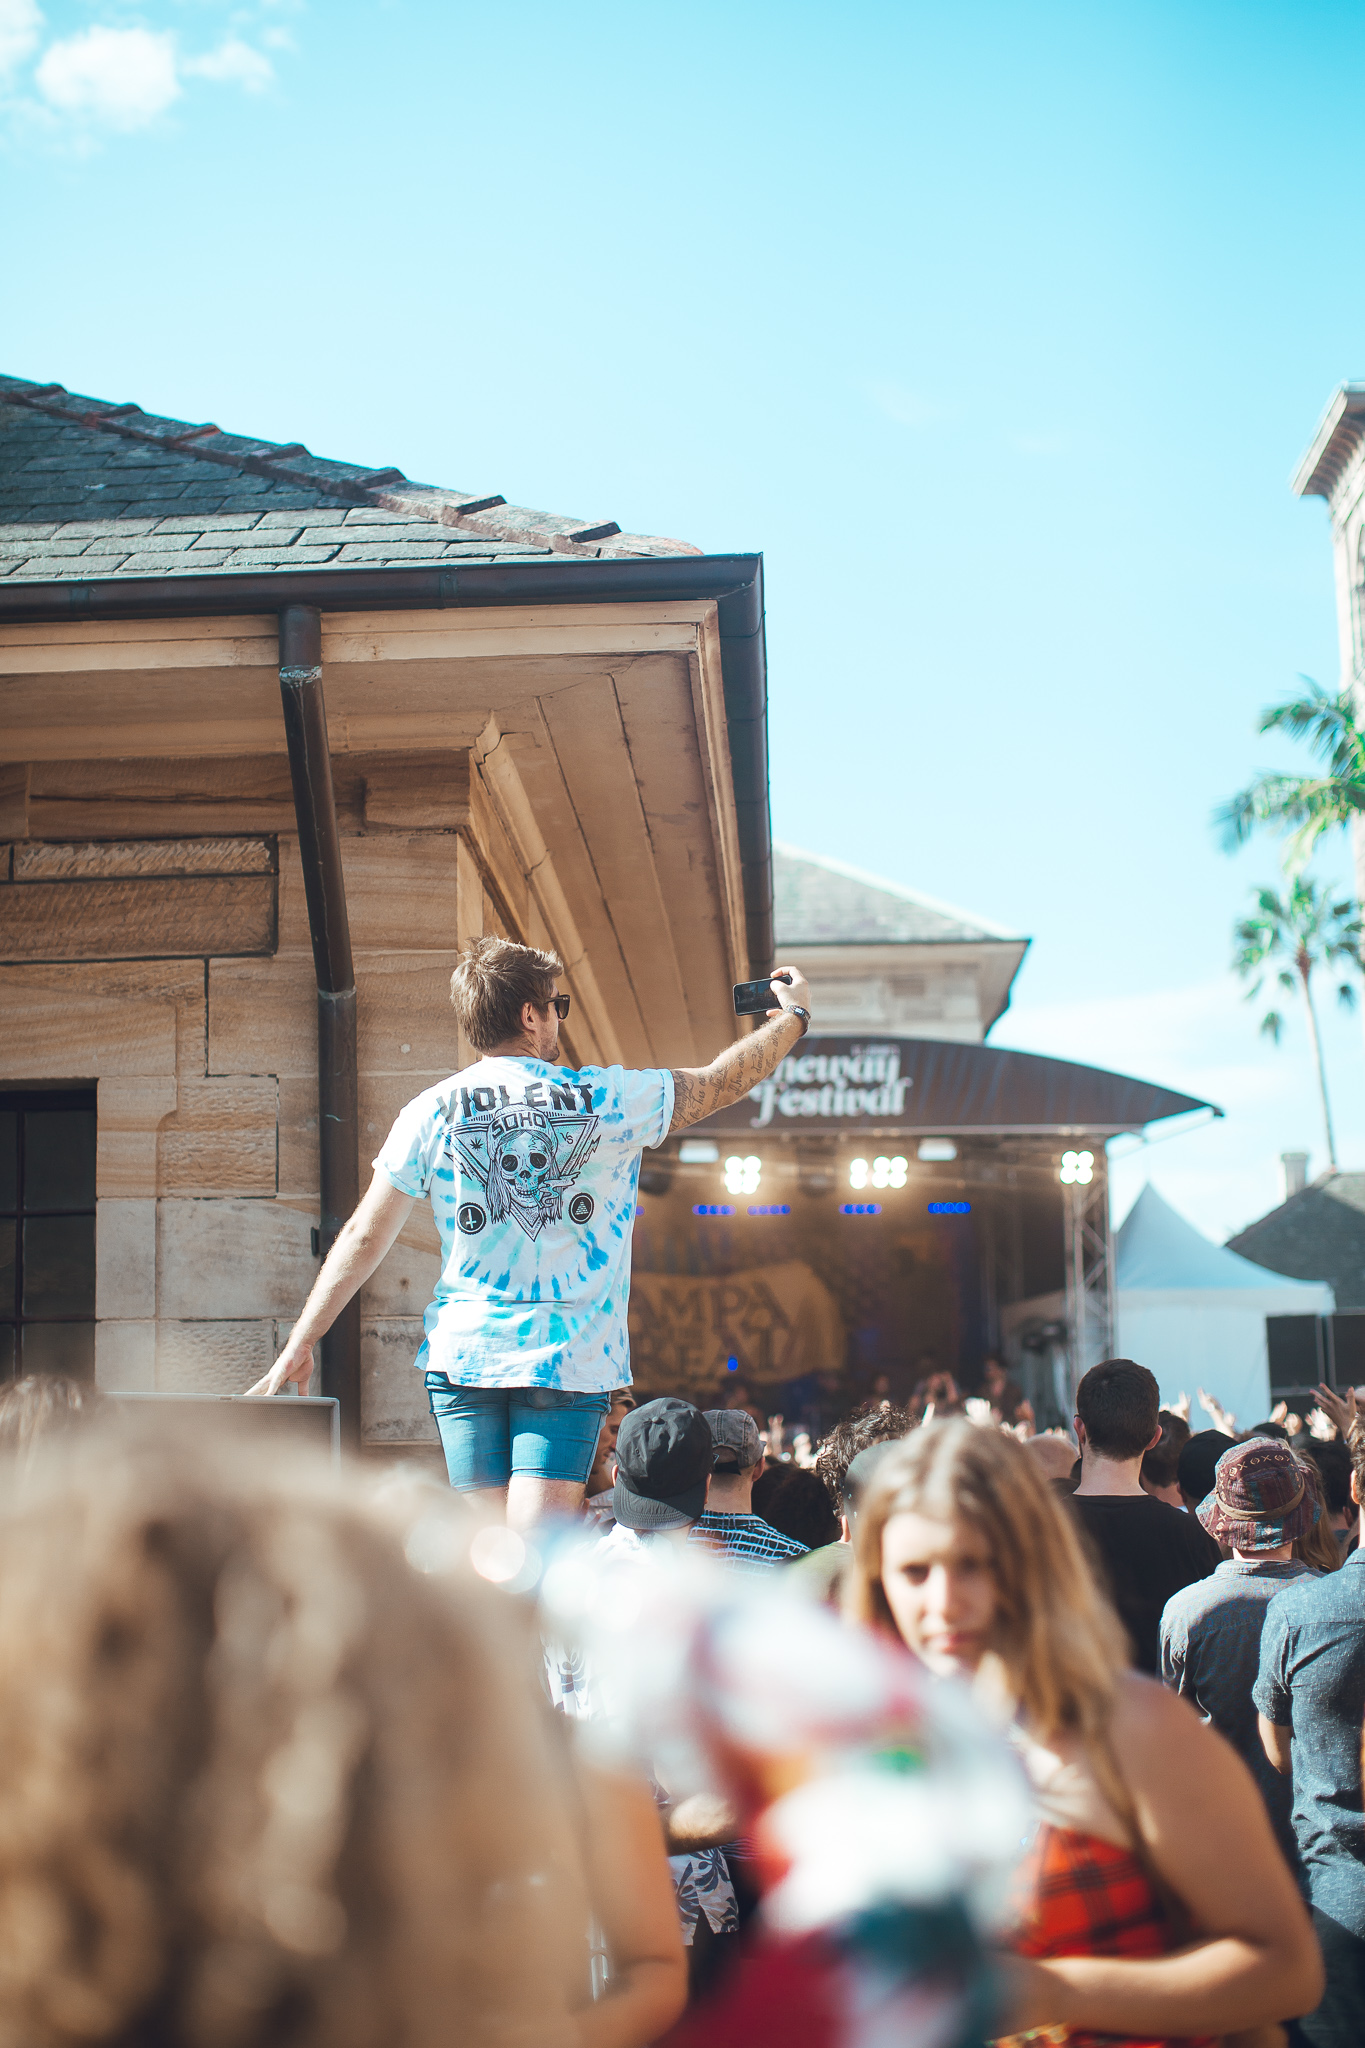 laneway_photo-by-oliver-minnett-00106